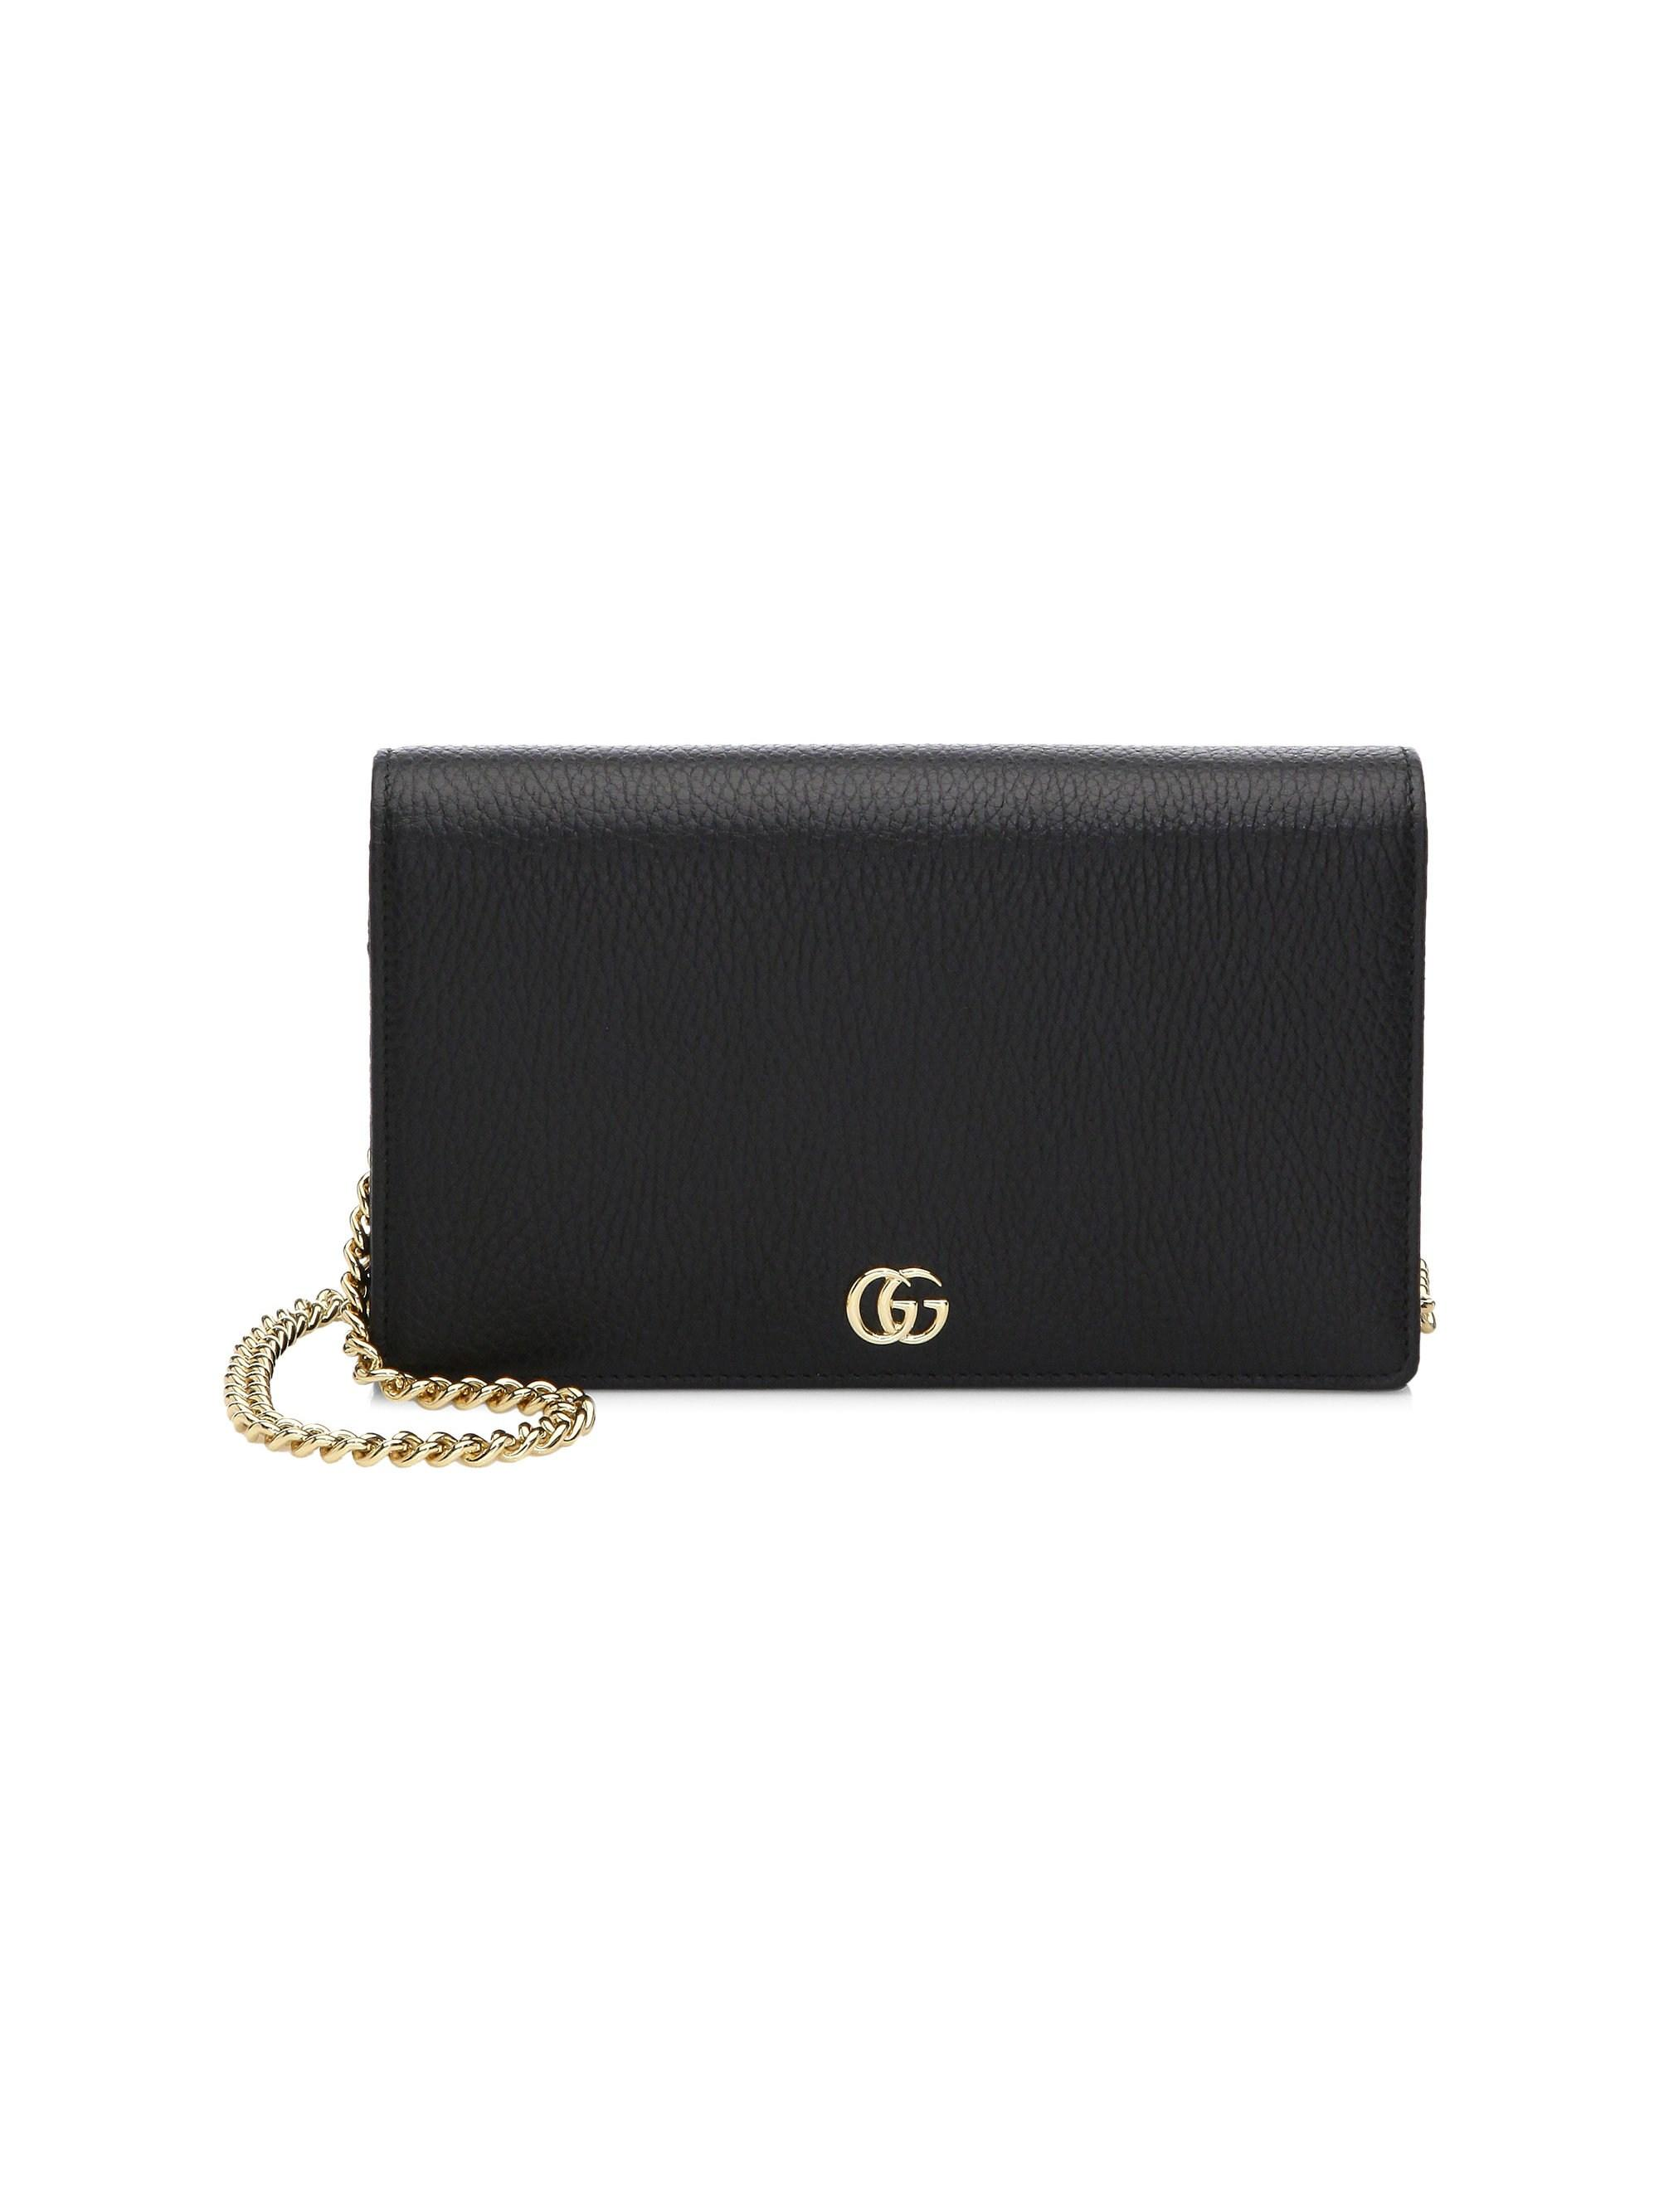 dcaa77b4c5a Lyst - Gucci Women s Petite Marmont Wallet On Chain - Black in Black